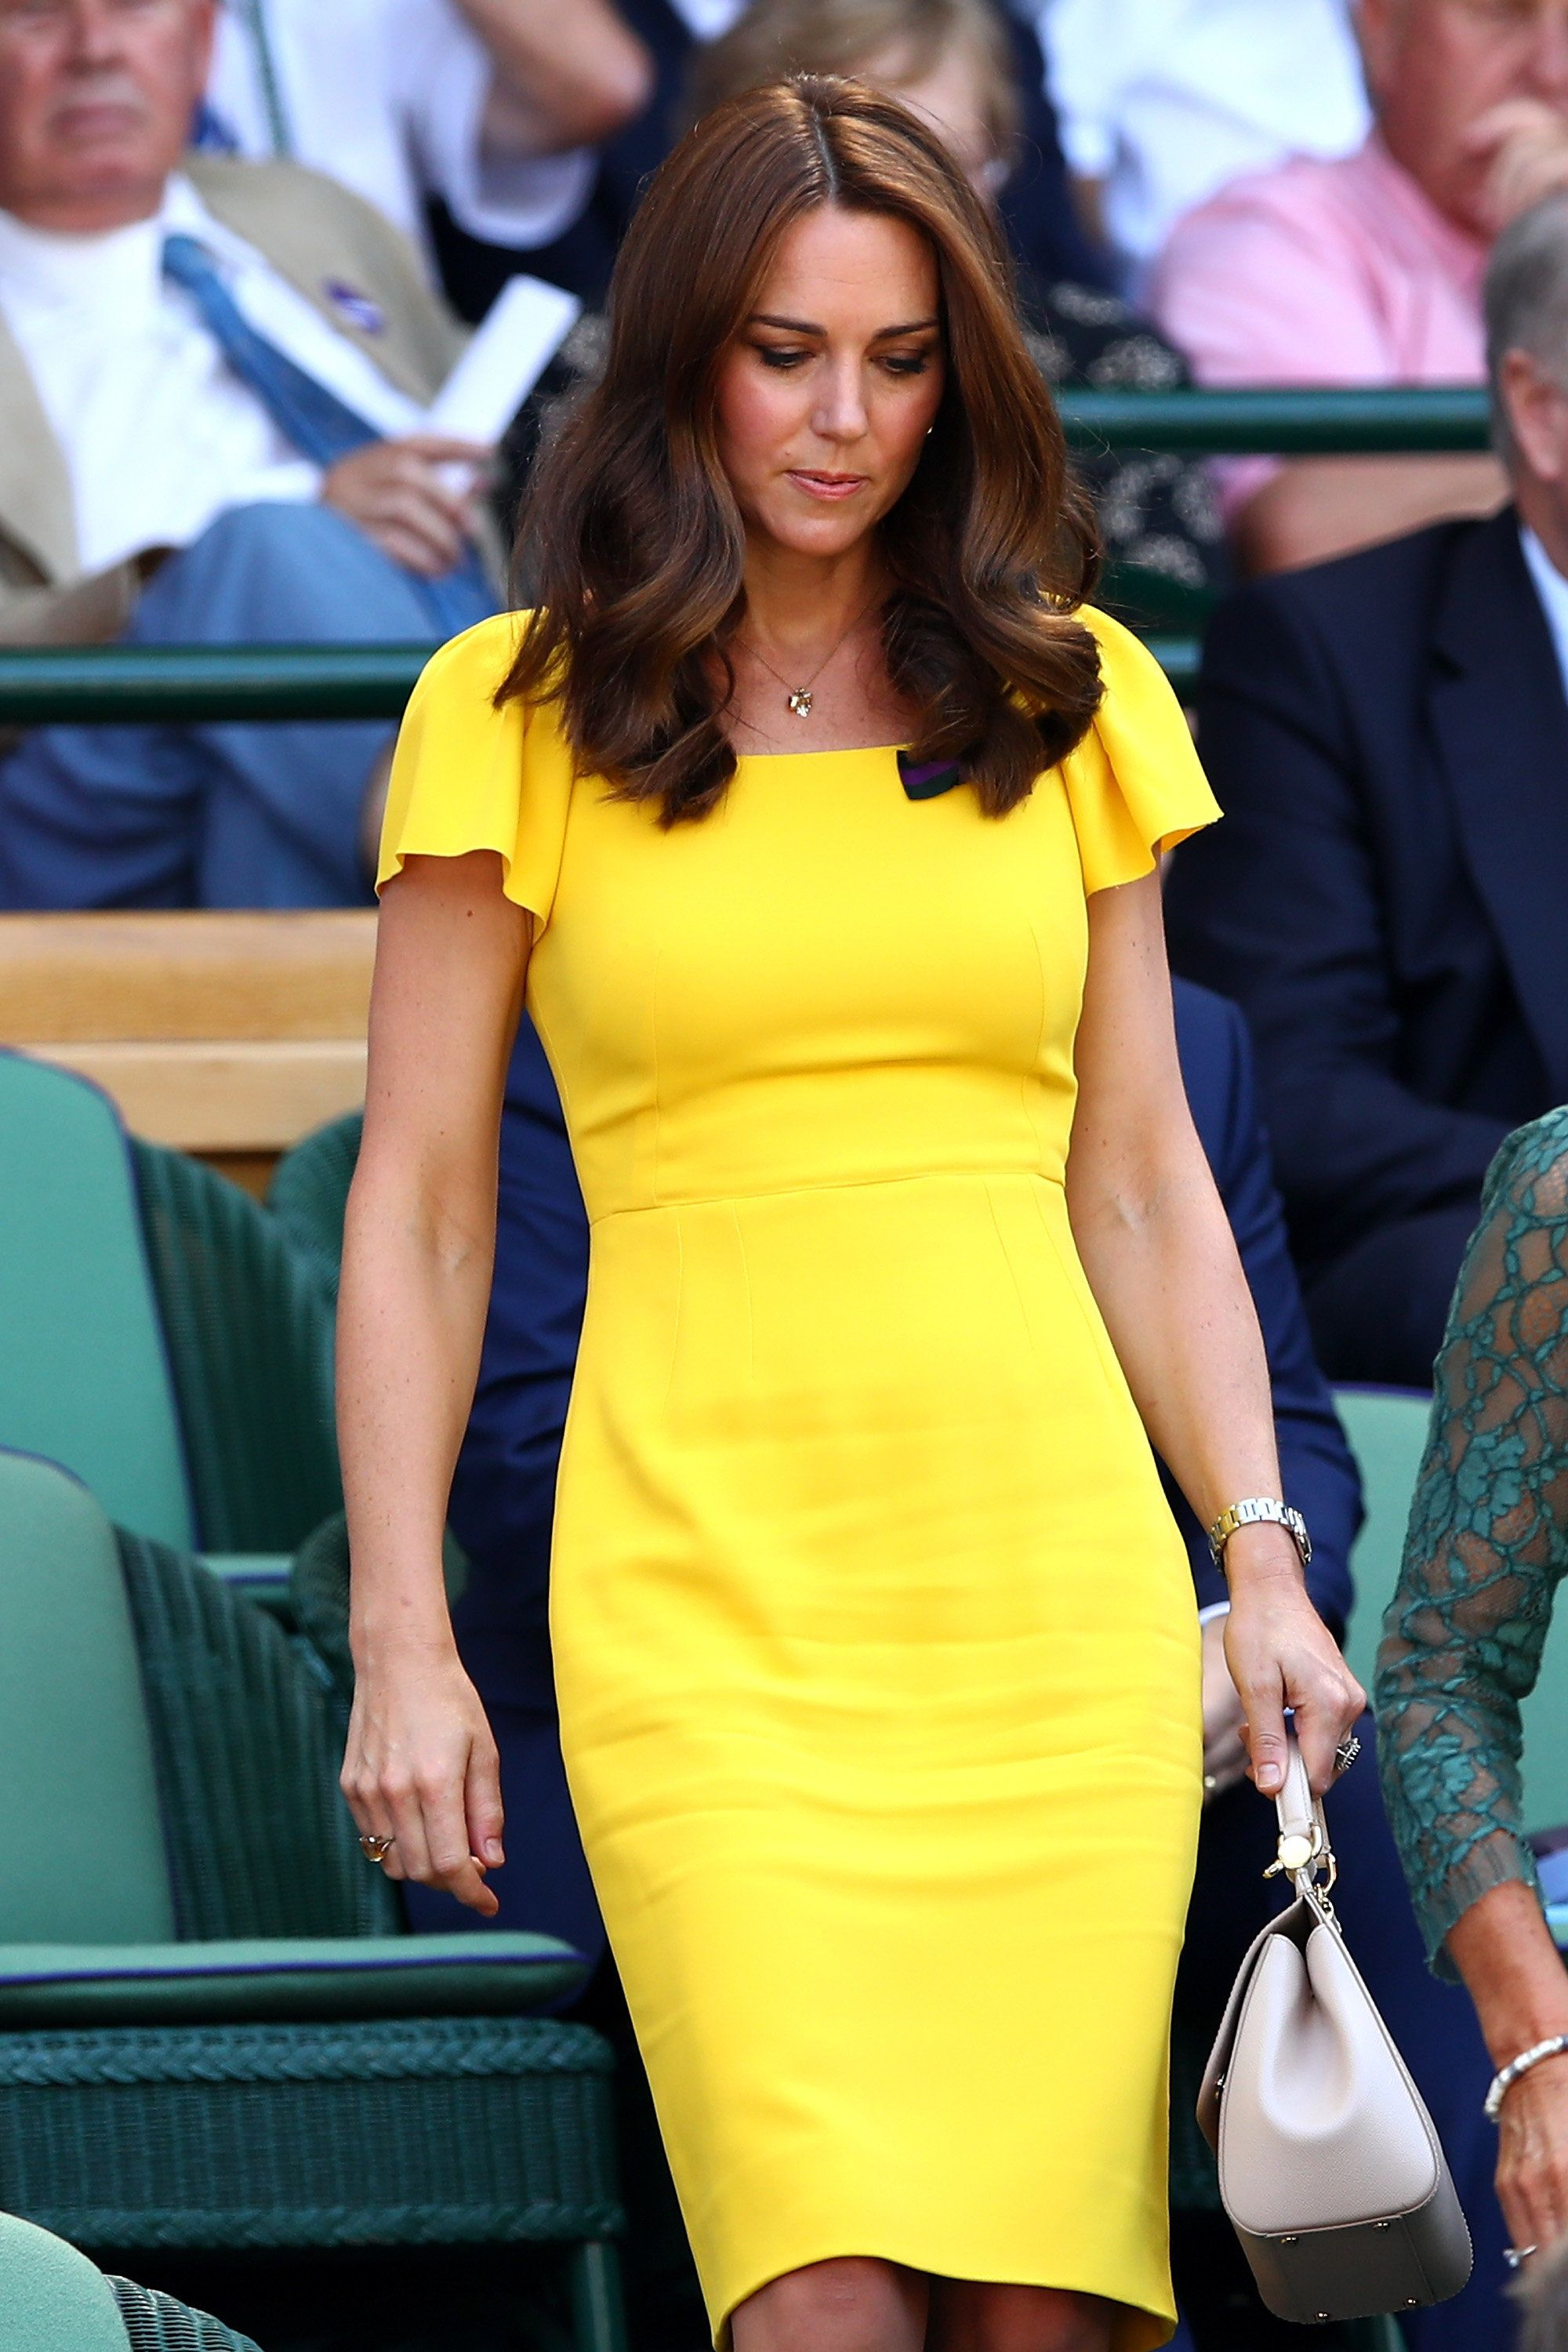 LOOKS WE LOVE: Kate Middleton Looking Lovely In Lemon At Wimbledon Last